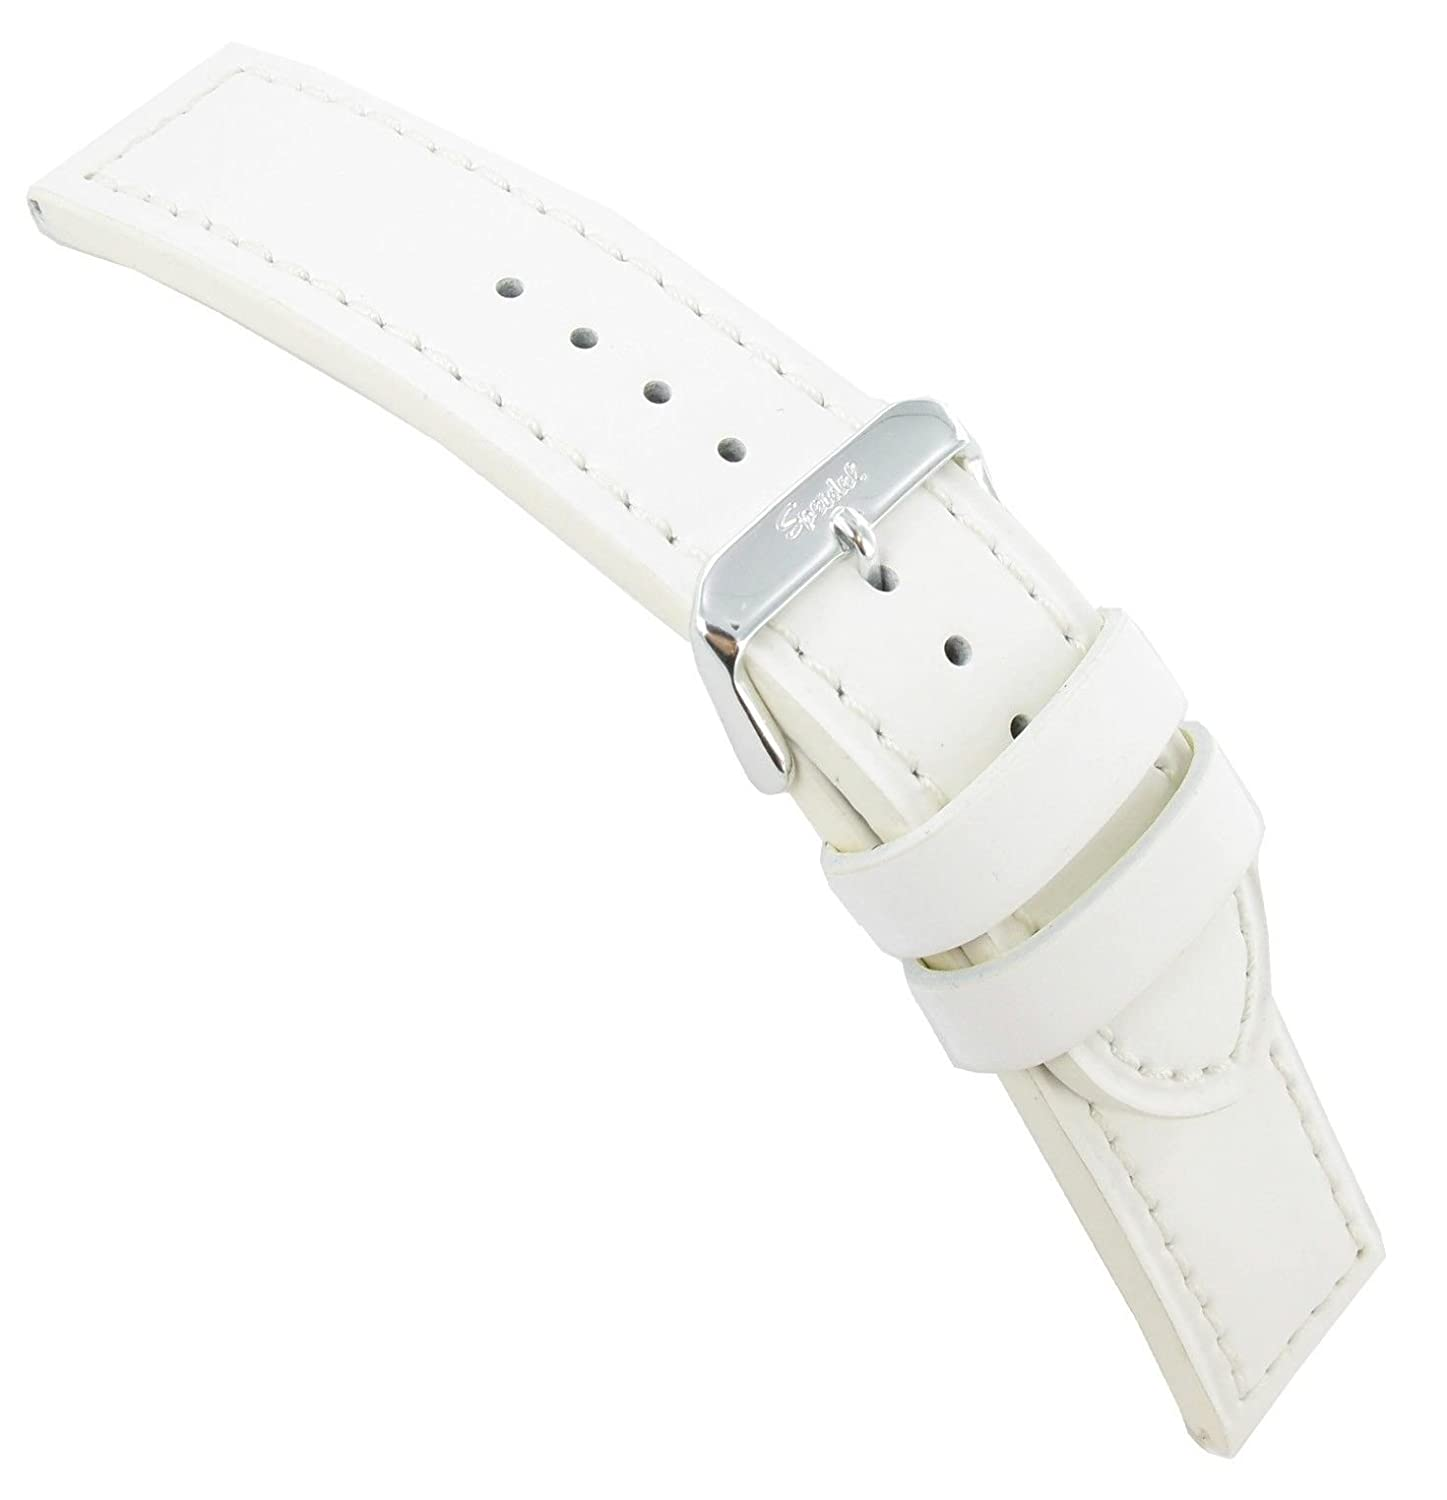 24 mm SpeidelホワイトSmooth Silicone Layered Over Genuine Calfskin Watch Band Long  B00GO8MTSS